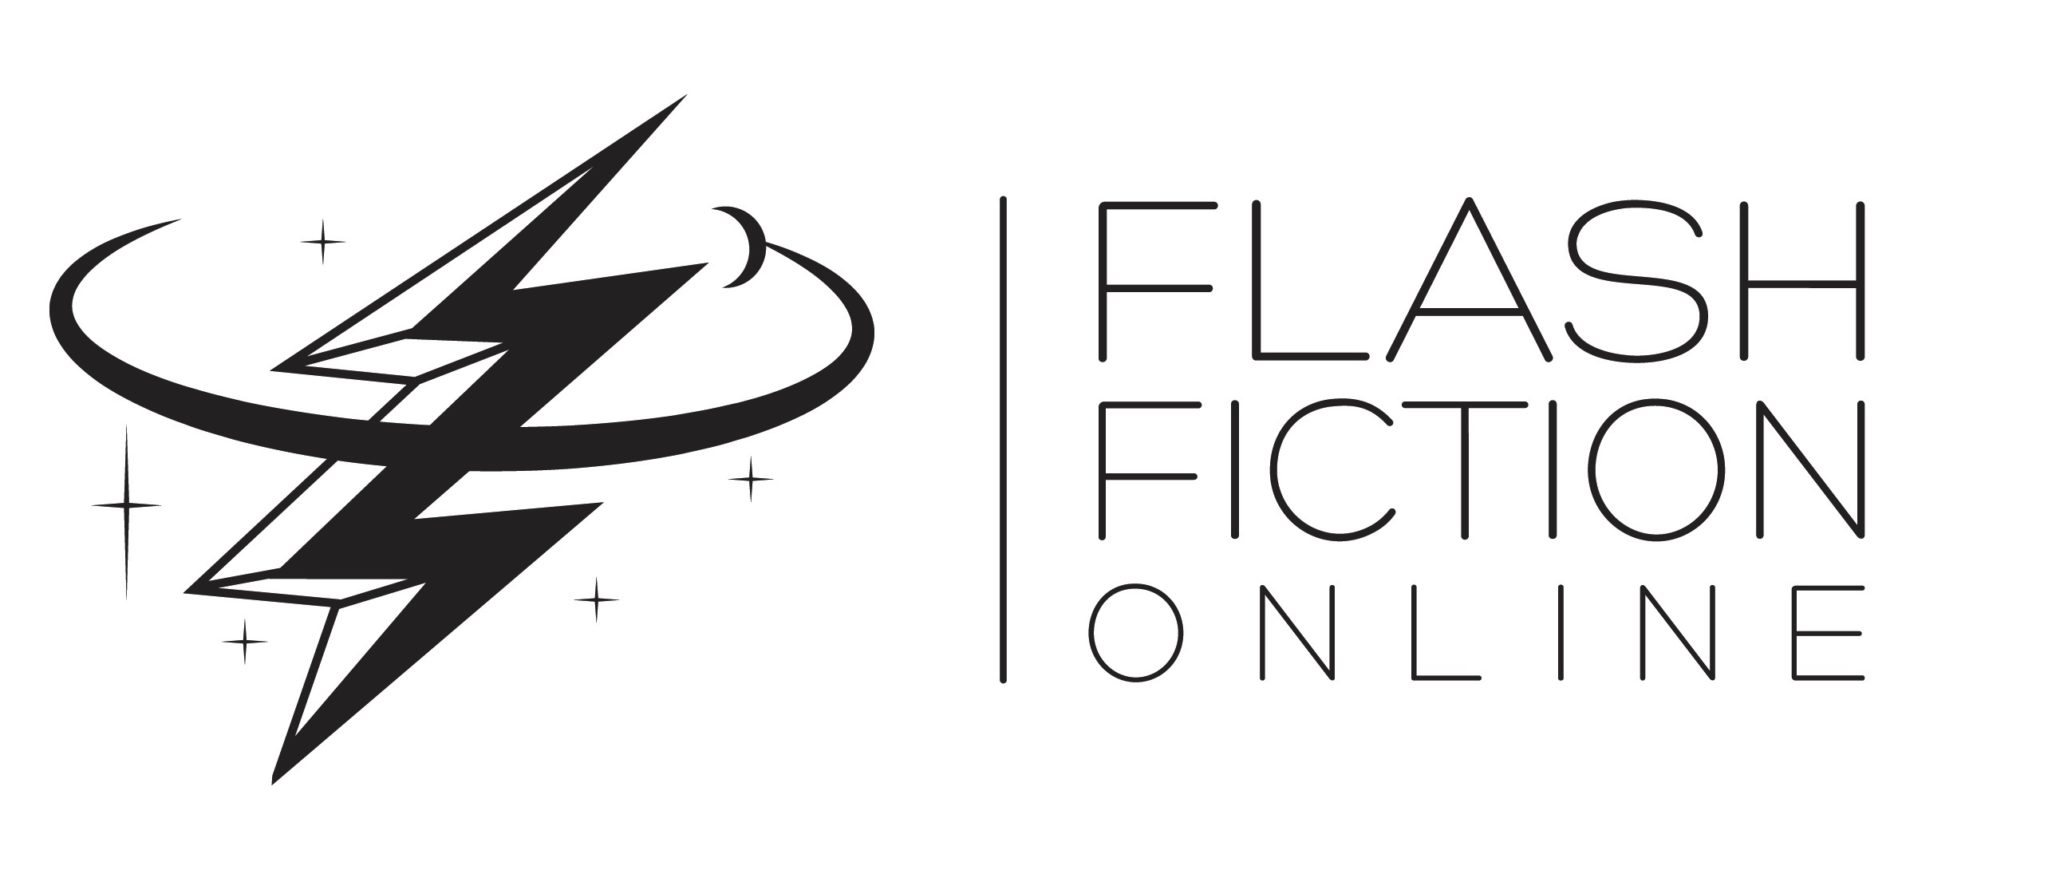 How to Write Flash Fiction: 15 Short Story Cliches That Need To Die